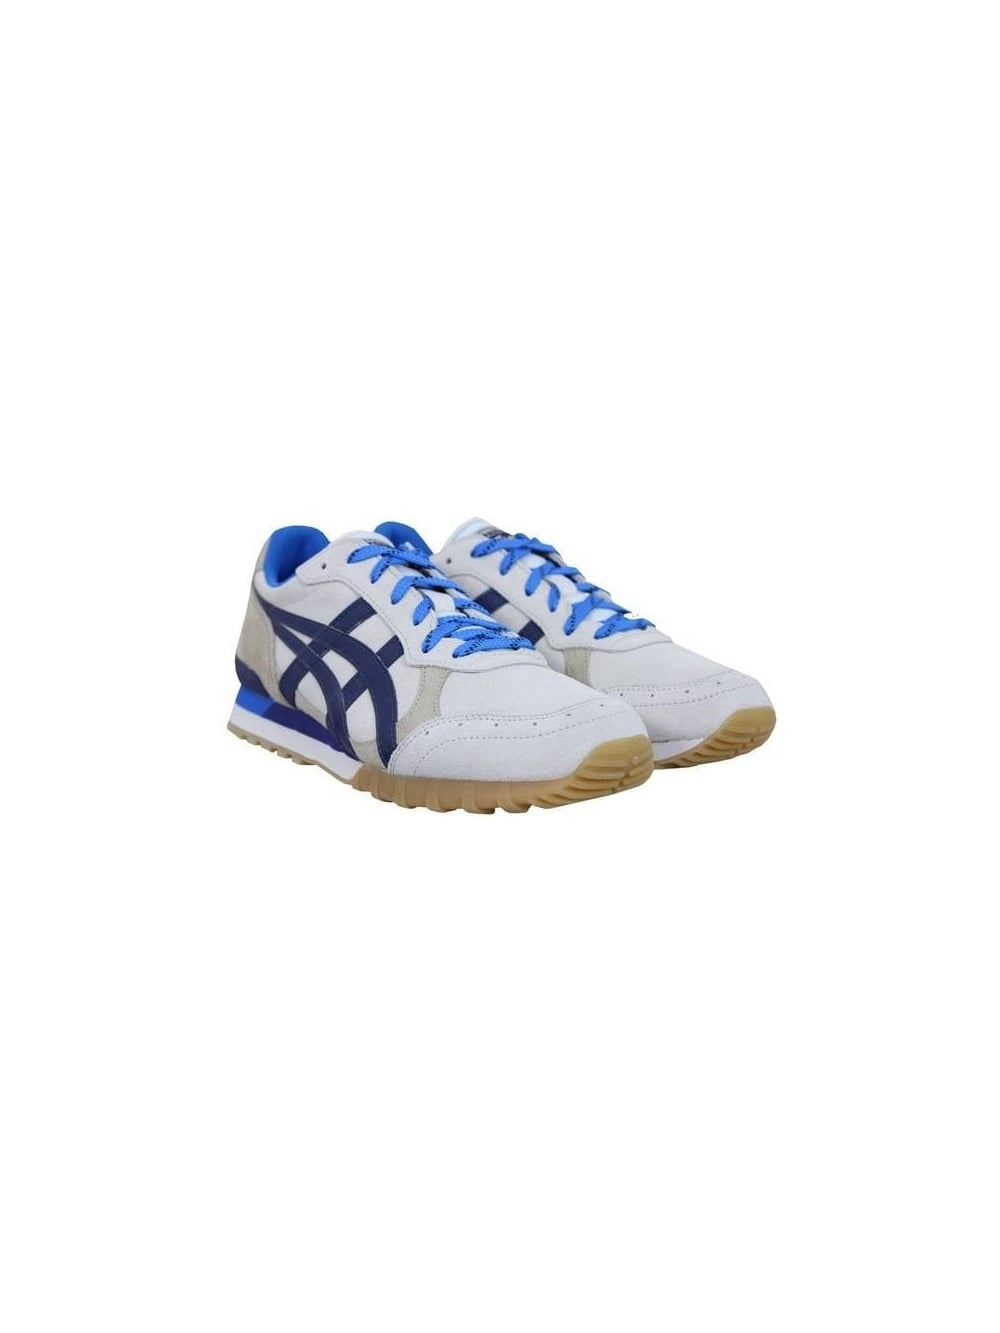 new style cb464 2876d Onitsuka Tiger Colorado 85 Trainers - Sand